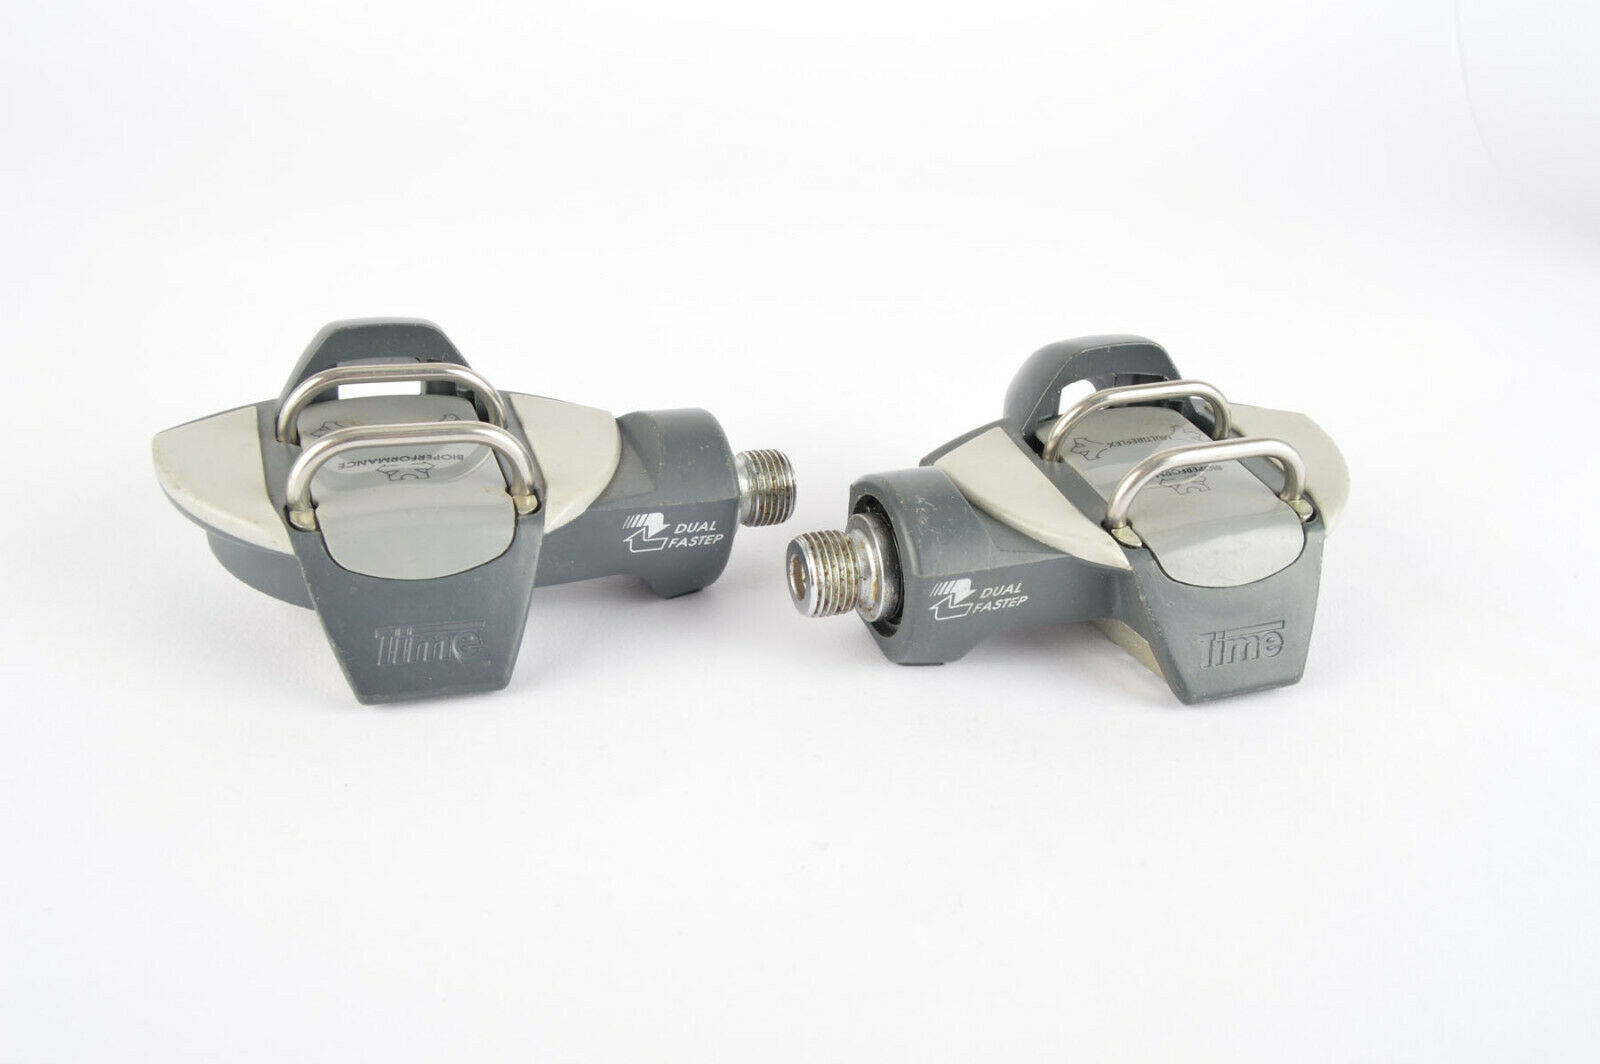 NOS Time Sierra Dual almost Clipless Pedals